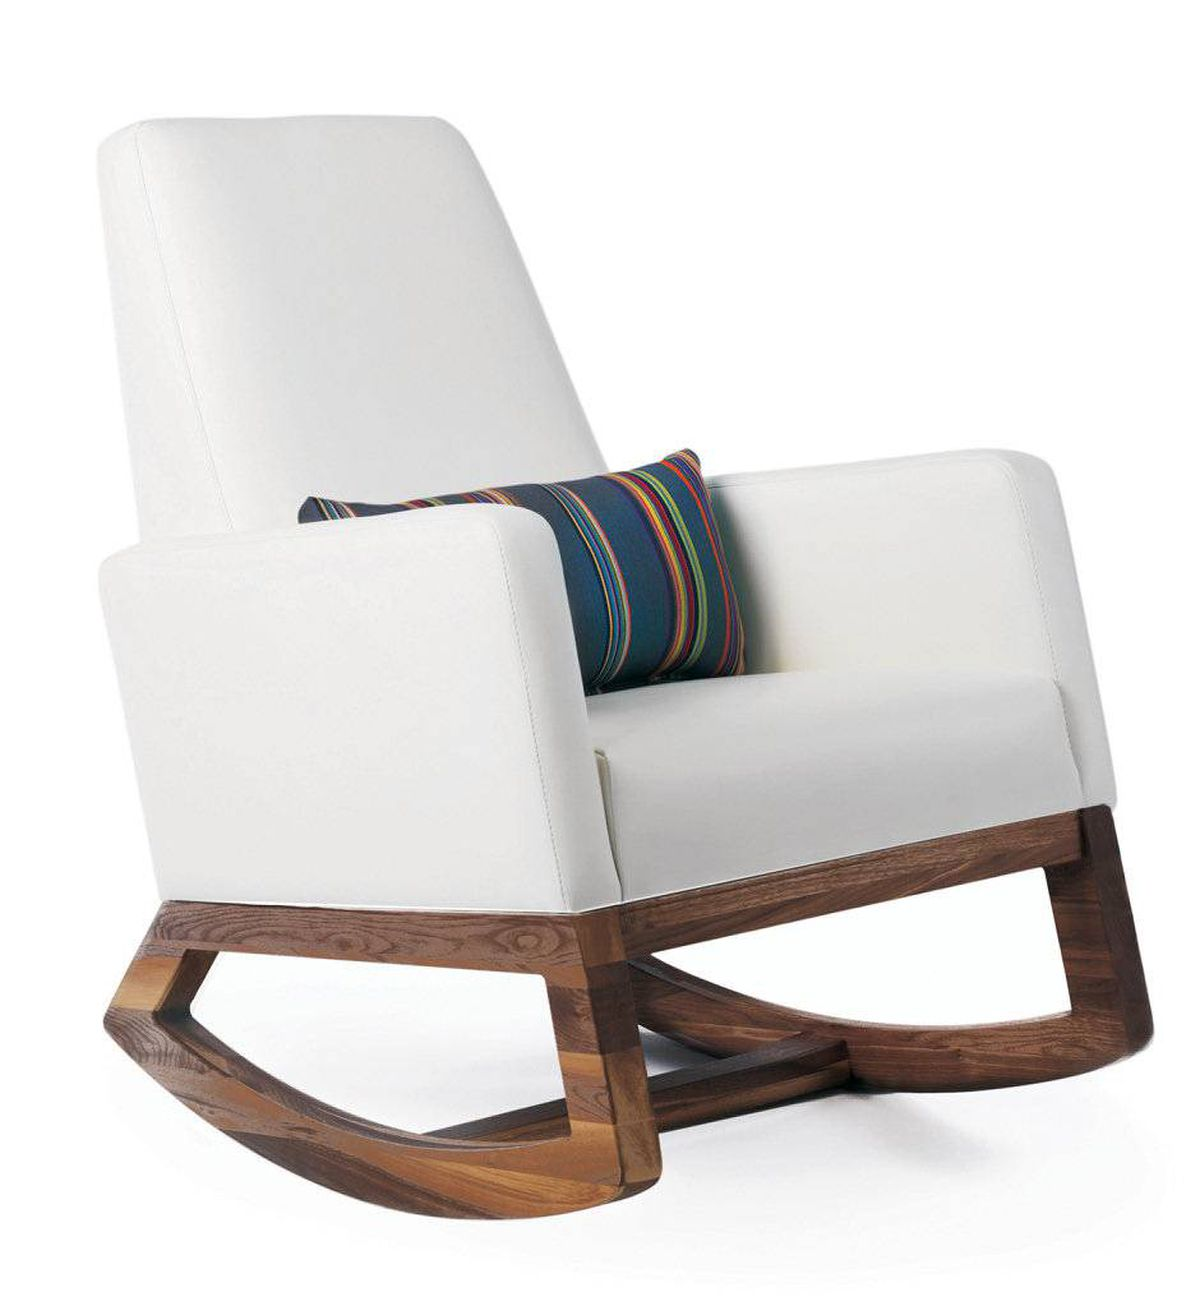 Monte's new Joya rocker is made to order in Toronto and features a solid walnut base, bonded leather upholstery and a lumbar pillow for added back support. $1,195 through www.montedesign.net.